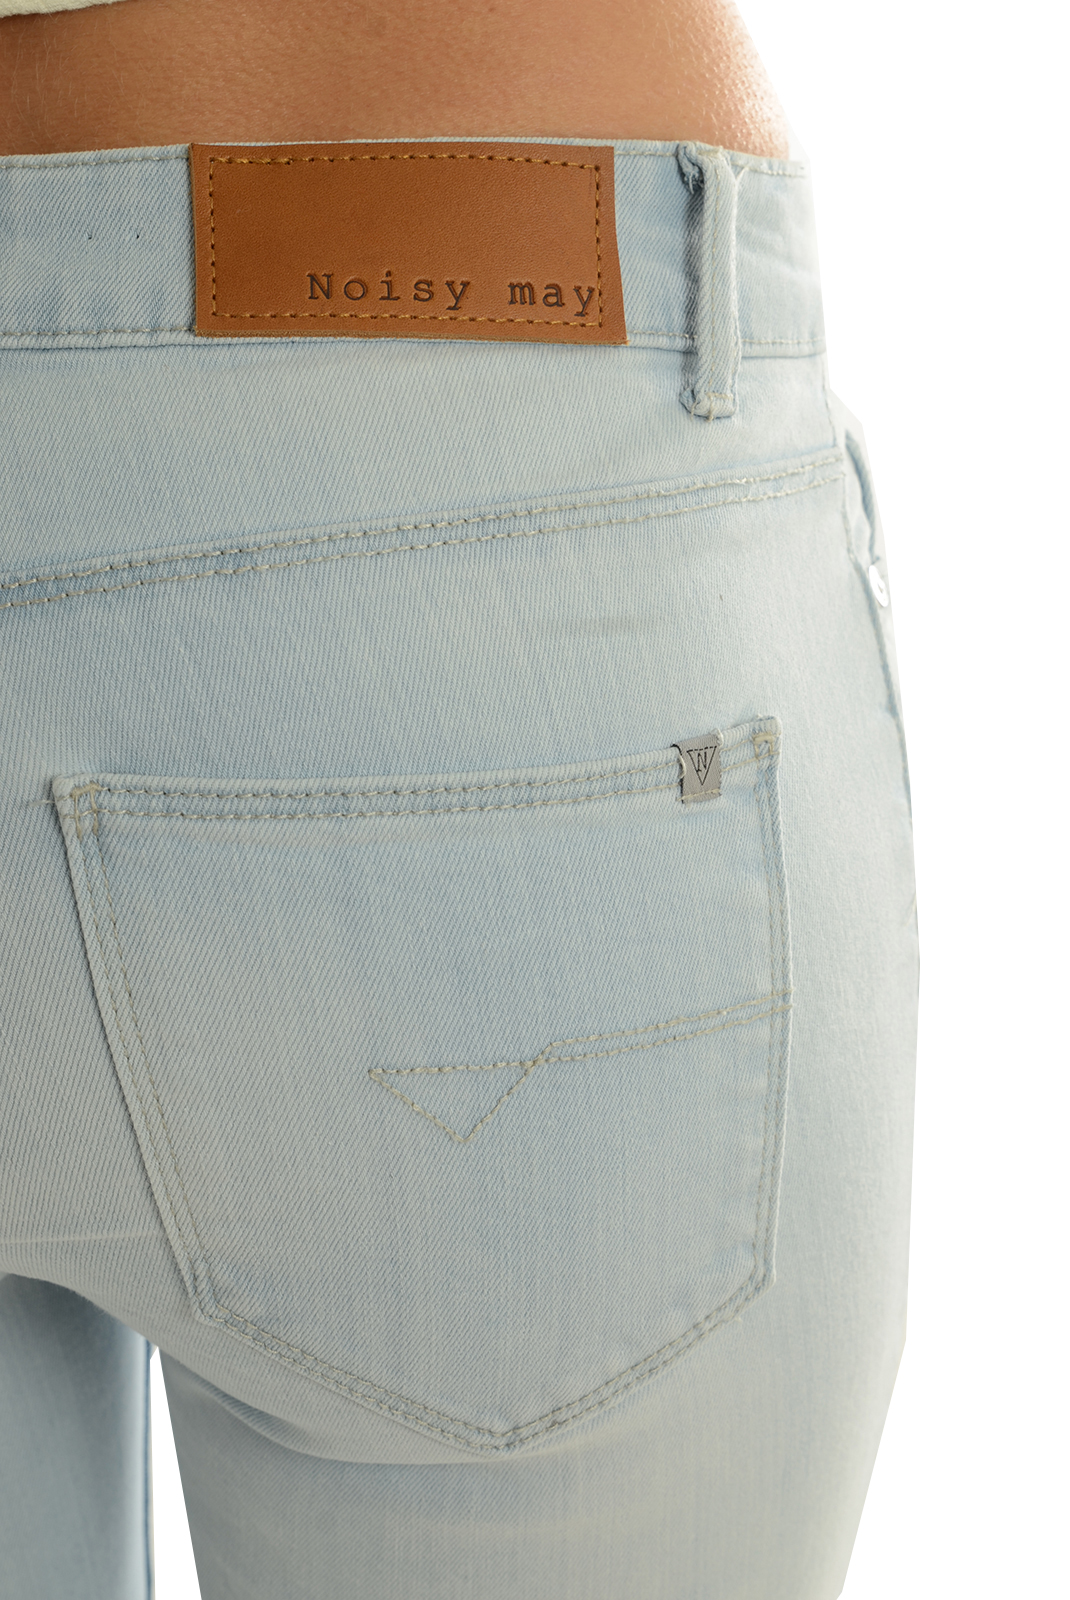 Jeans   Noisy May LUCY NM S.S DEST LIGHT DENIM BLUE